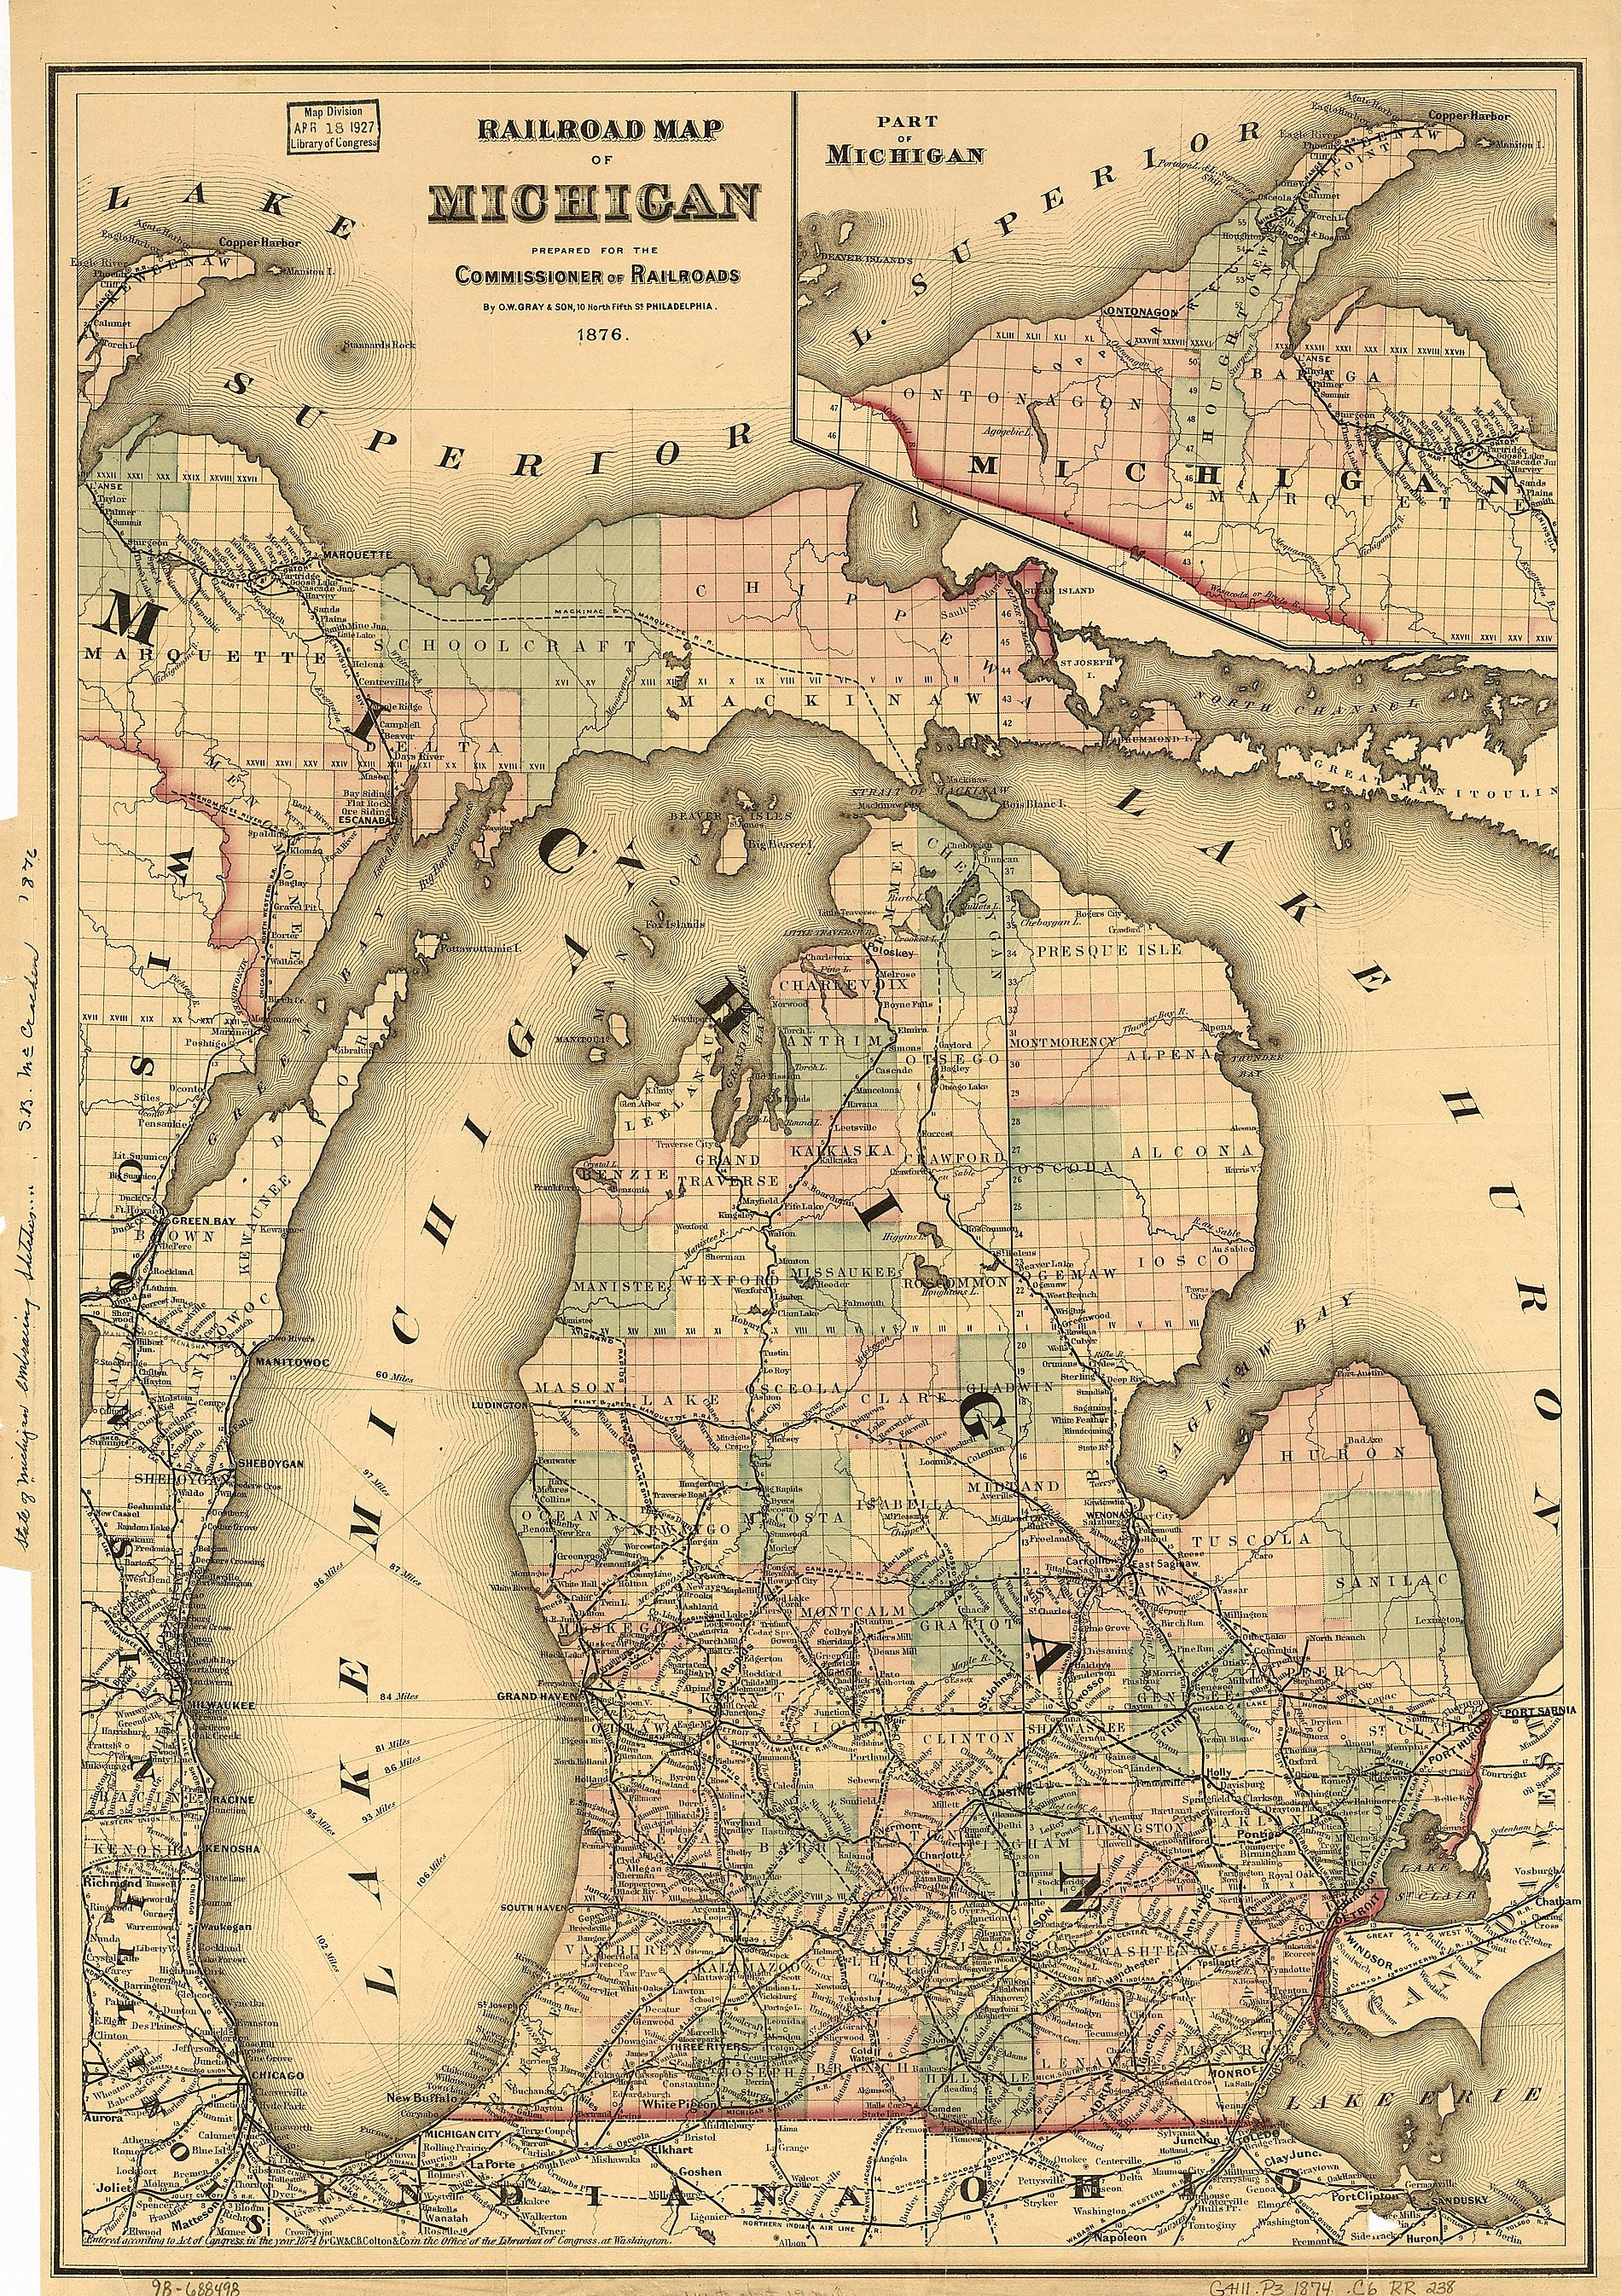 This 1876 map shows Cheboygan County between Emmet County and Presque Isle County.